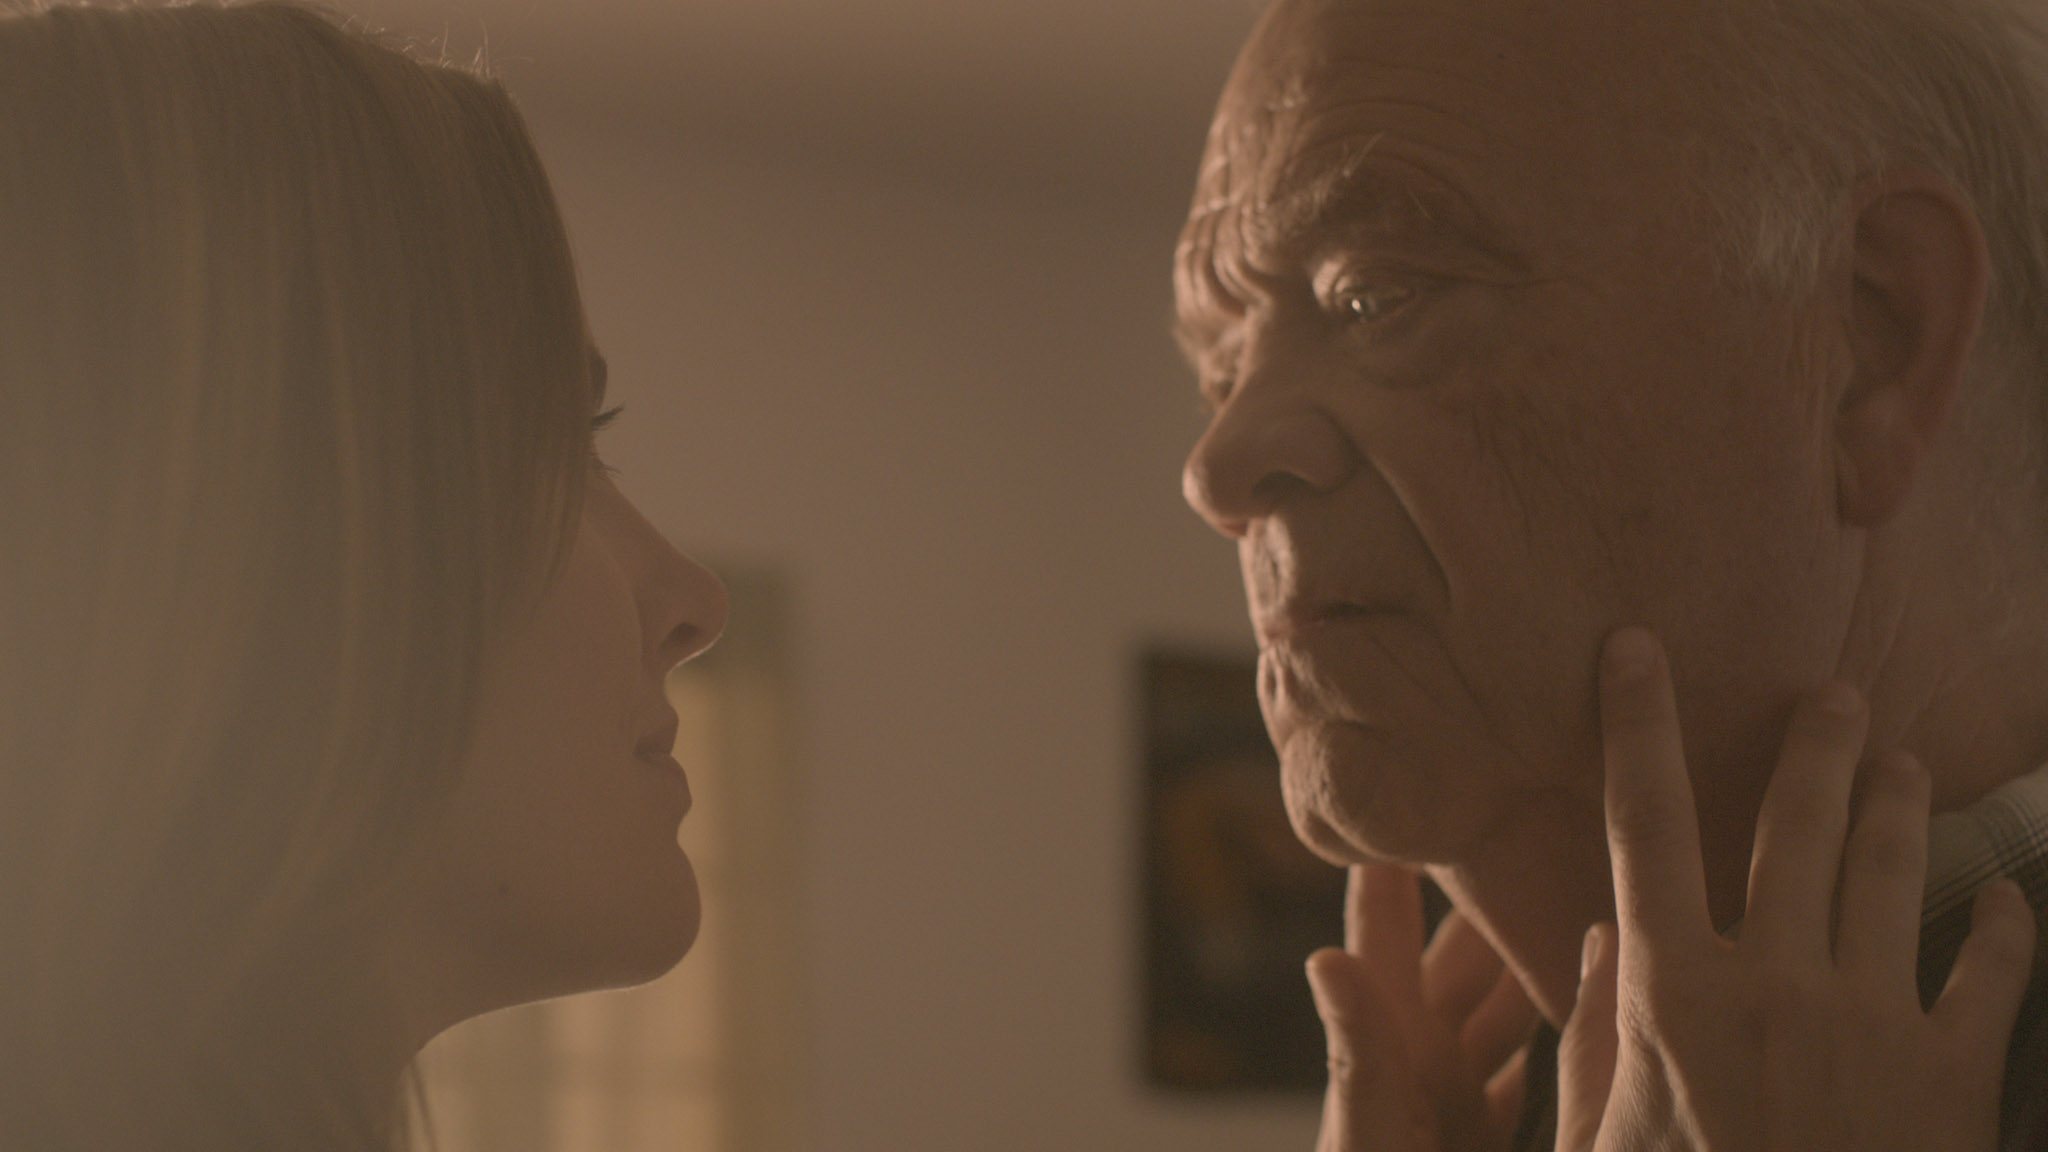 Joel takes in the new Alice. Youth, a short film coming in 2016. Starring Jessica Stroup and George Maguire, directed by Brett Marty. A sci-fi film about growing old in a world of perpetual youth.